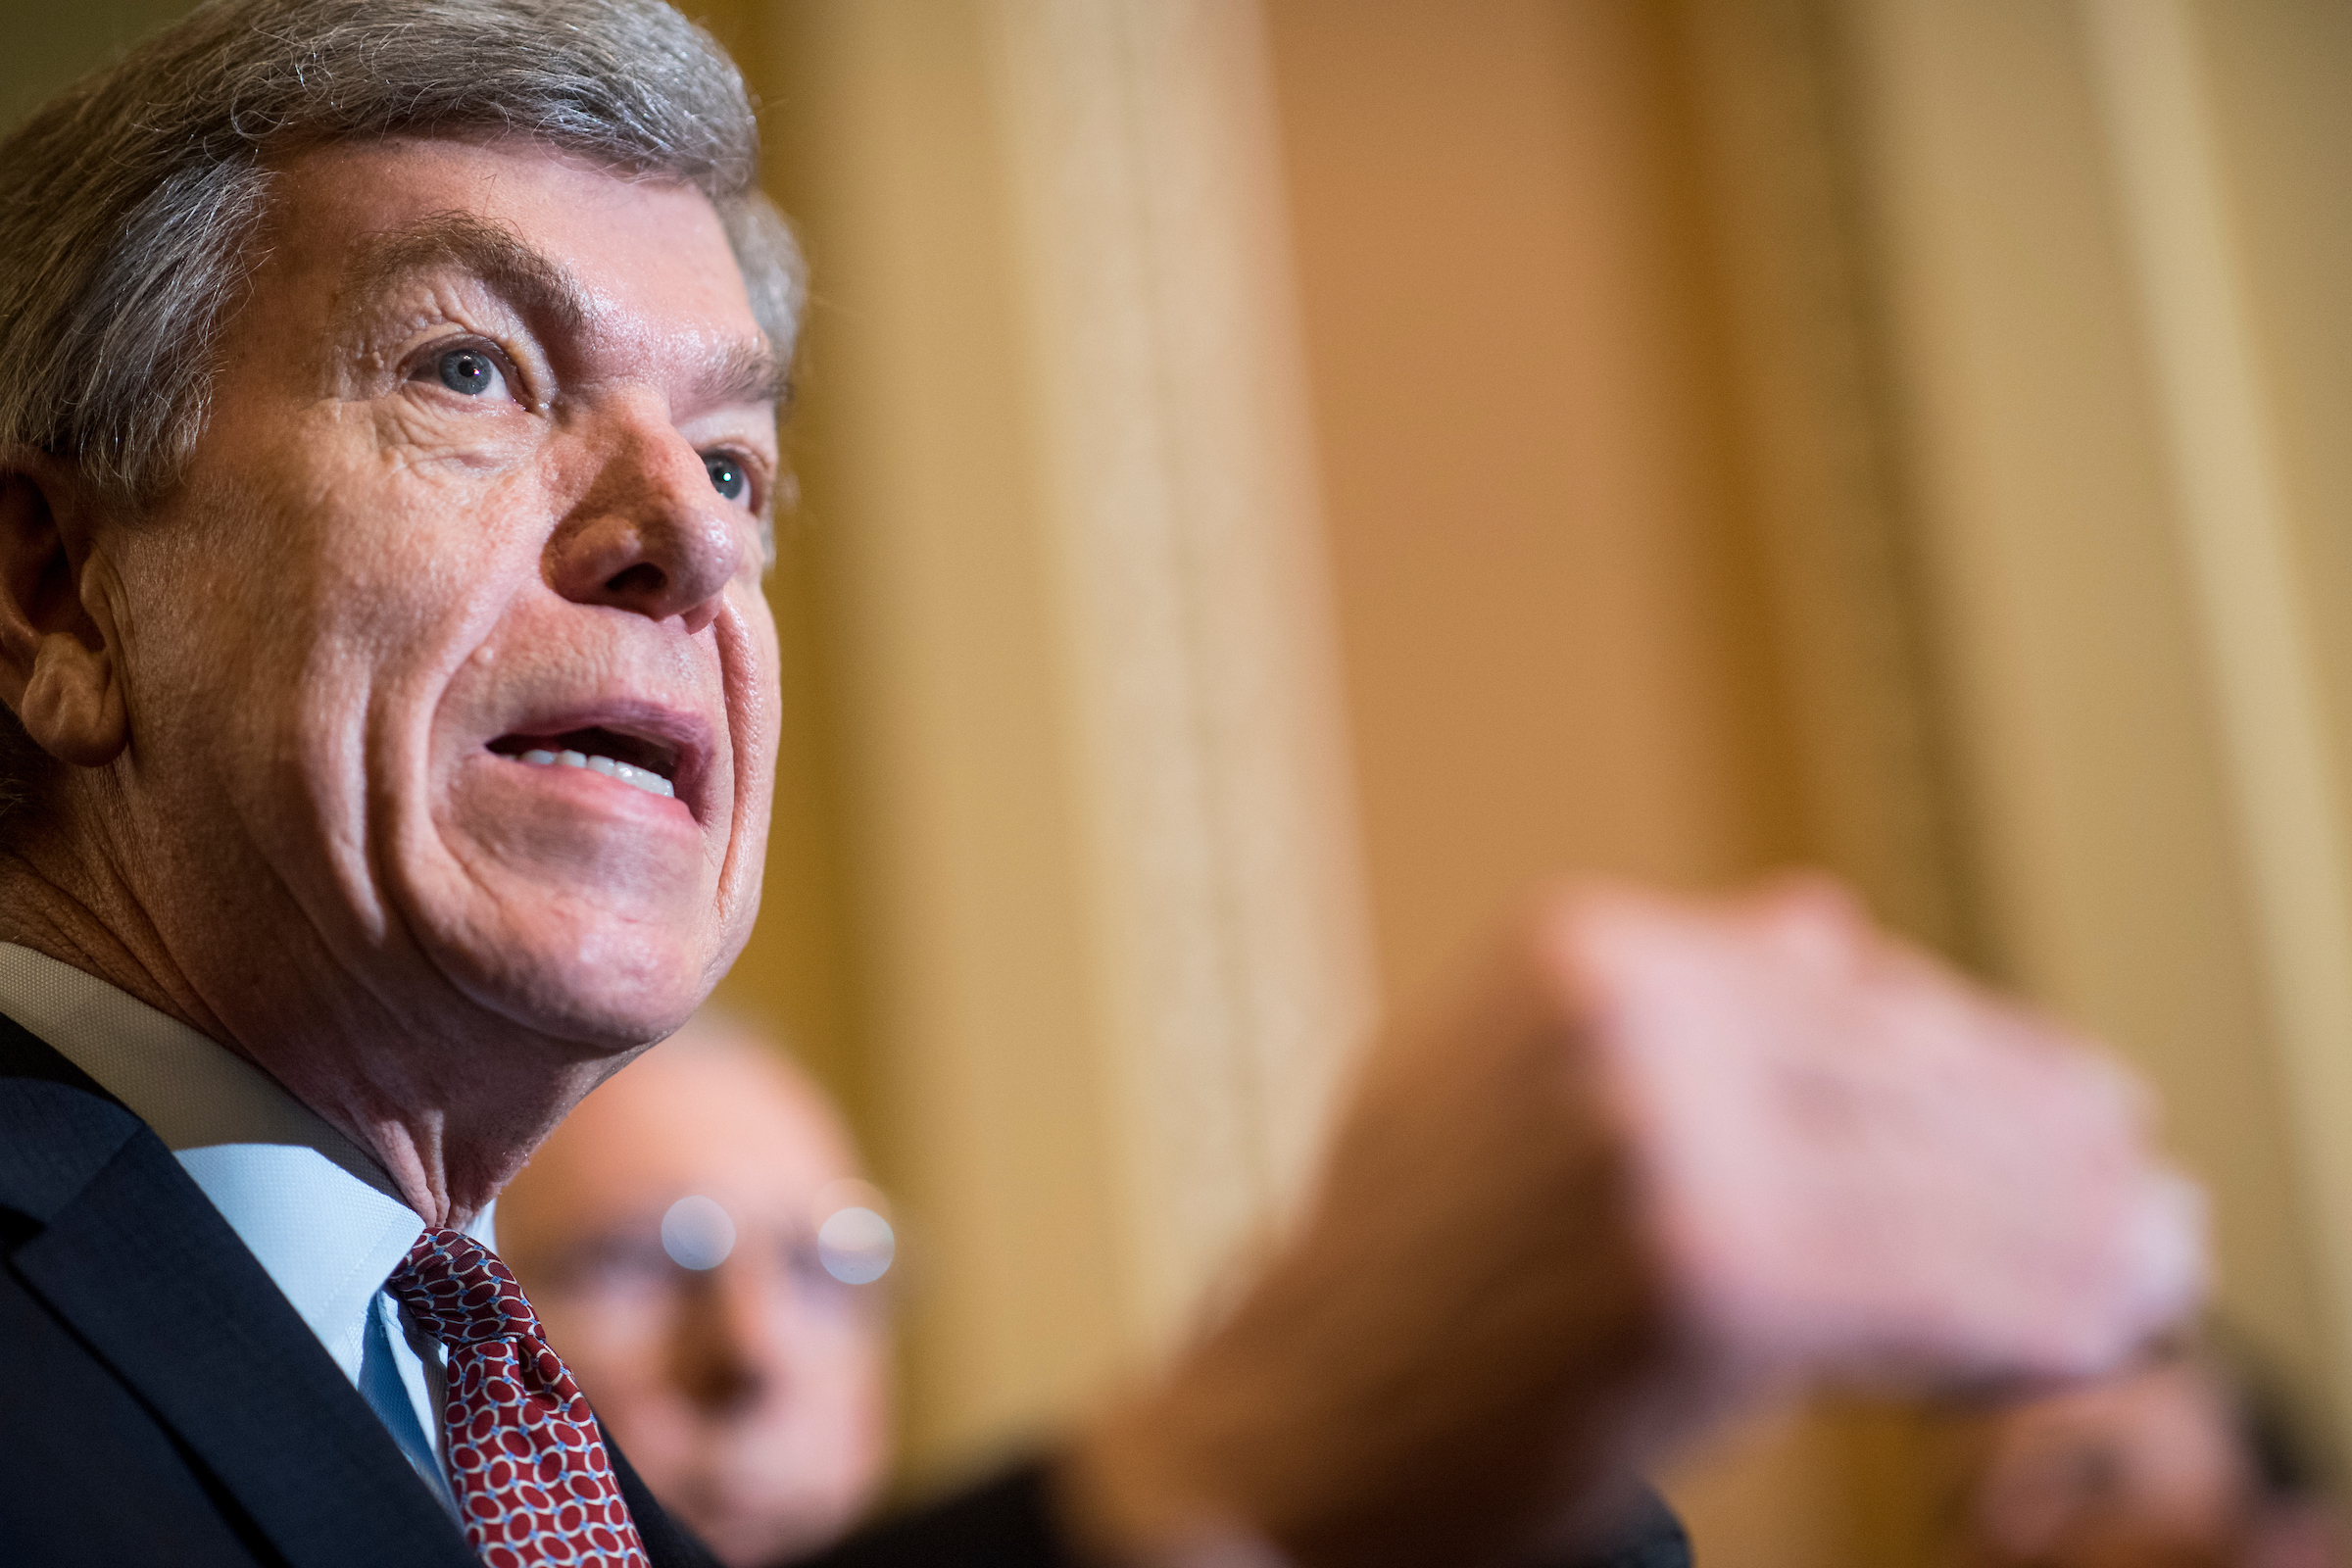 UNITED STATES - APRIL 24: Sen. Roy Blunt, R-Mo., speaks to the media in the Ohio Clock Corridor in the Capitol on Tuesday, April 24, 2018. (Photo By Bill Clark/CQ Roll Call)